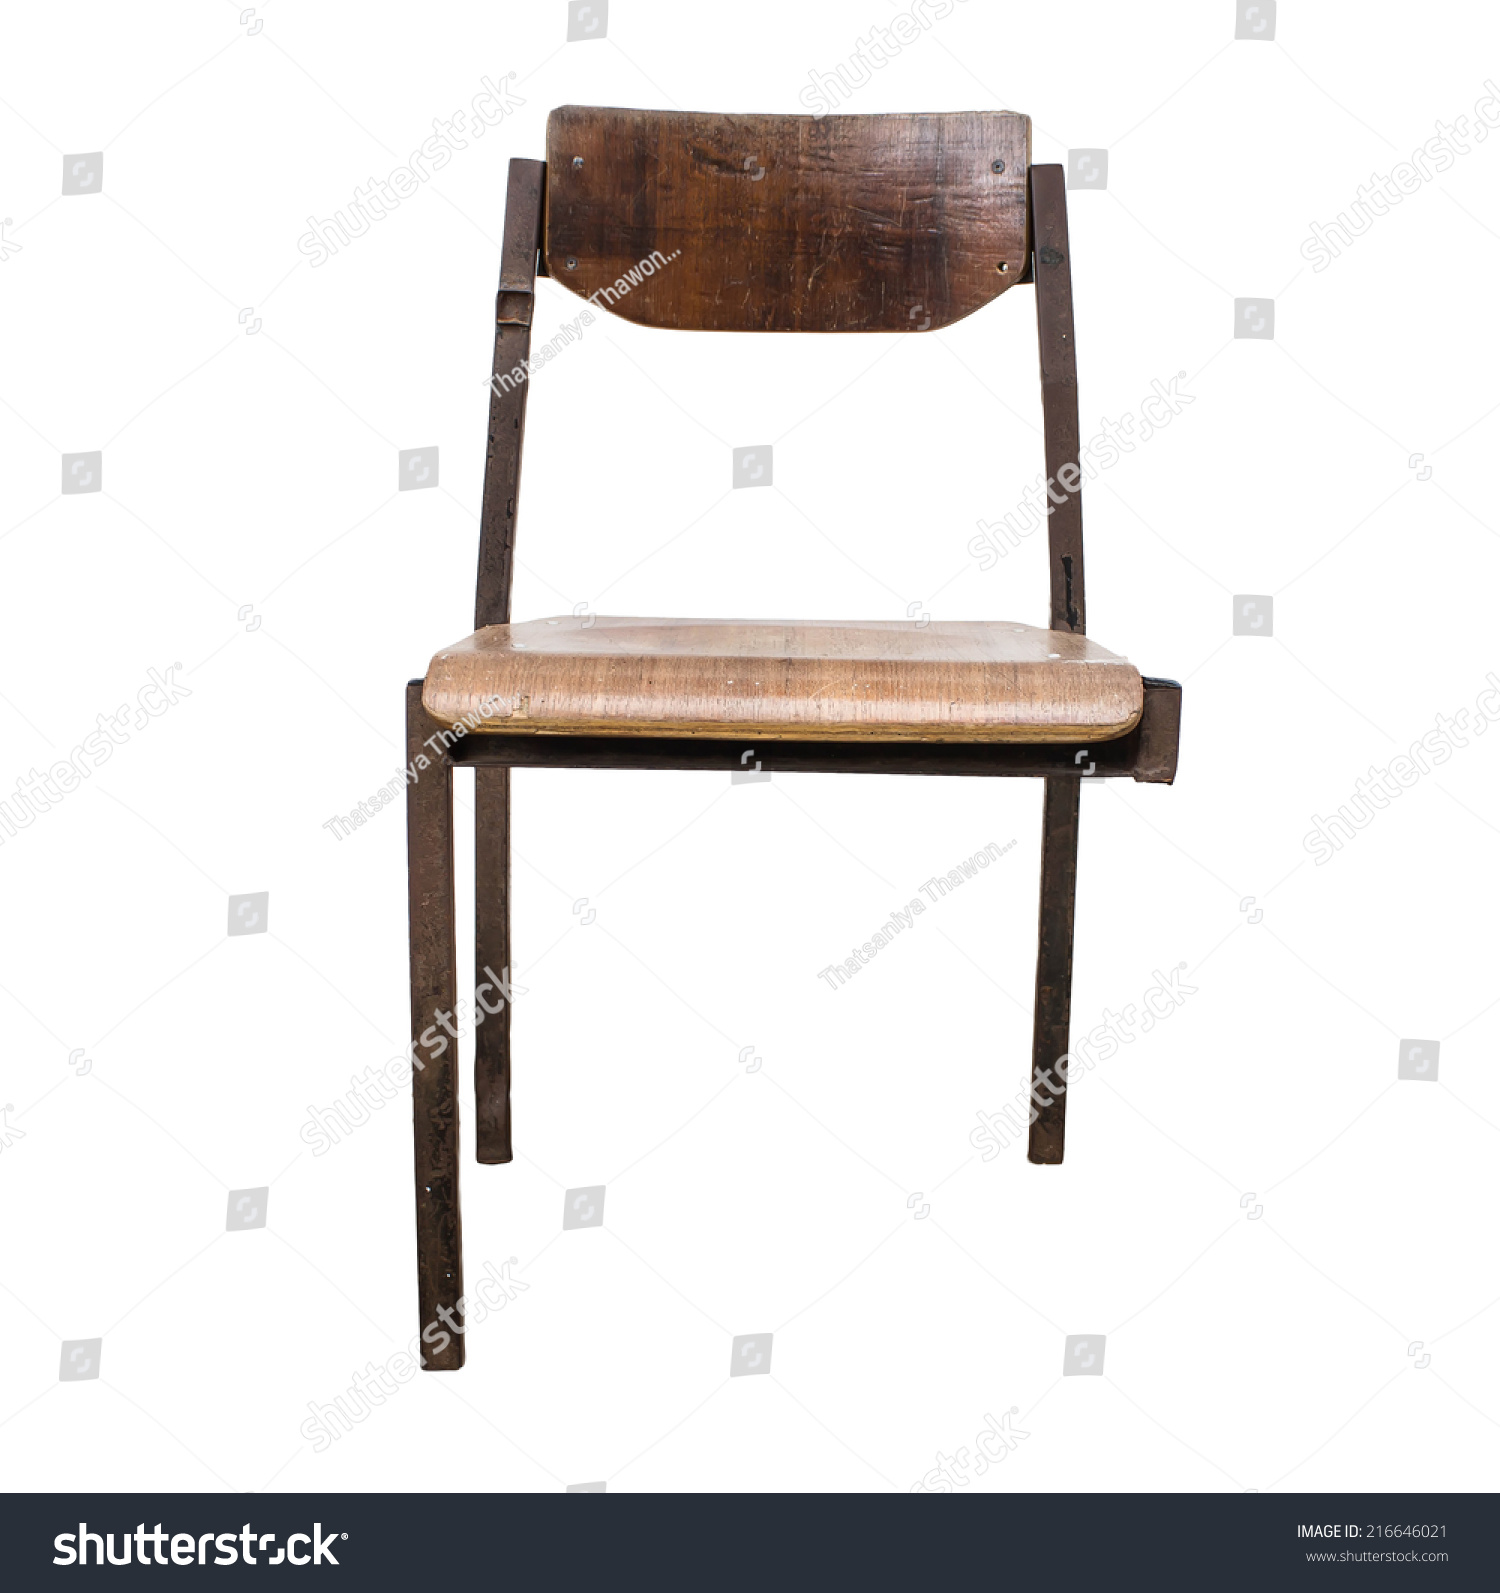 Old Broken Wooden Chair Isolated On White Background